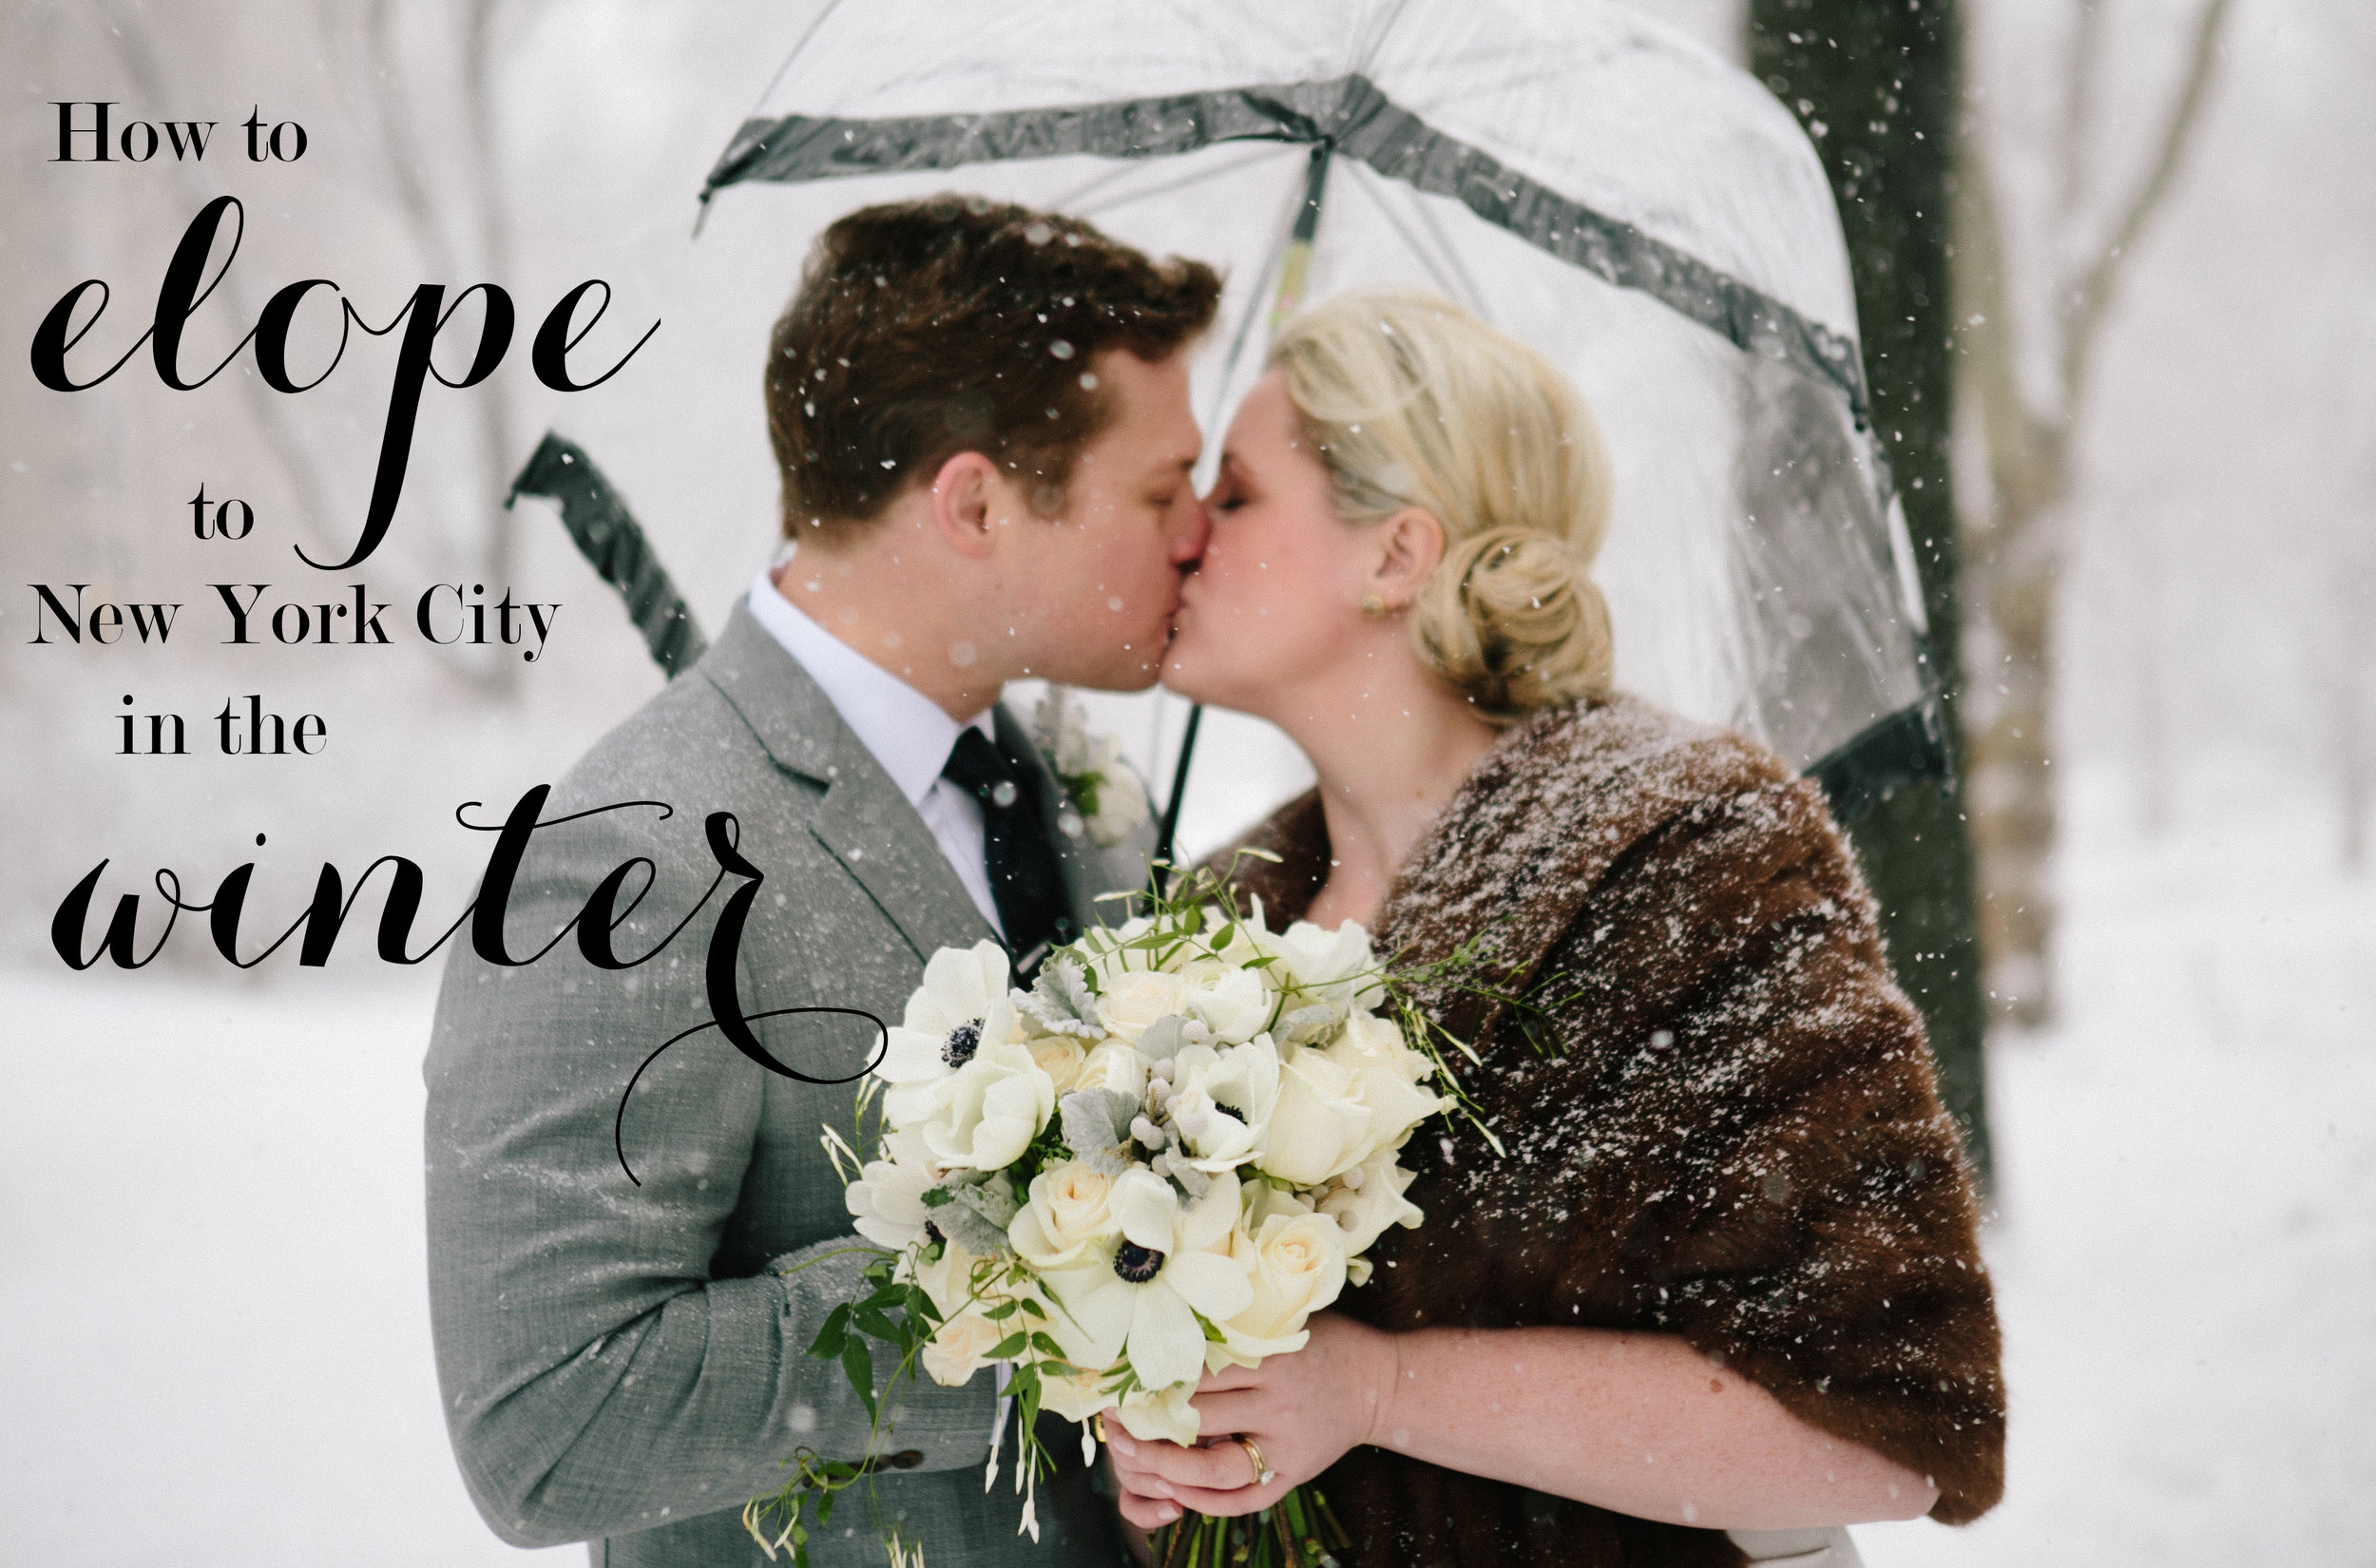 Winter elopements in New York City.jpg